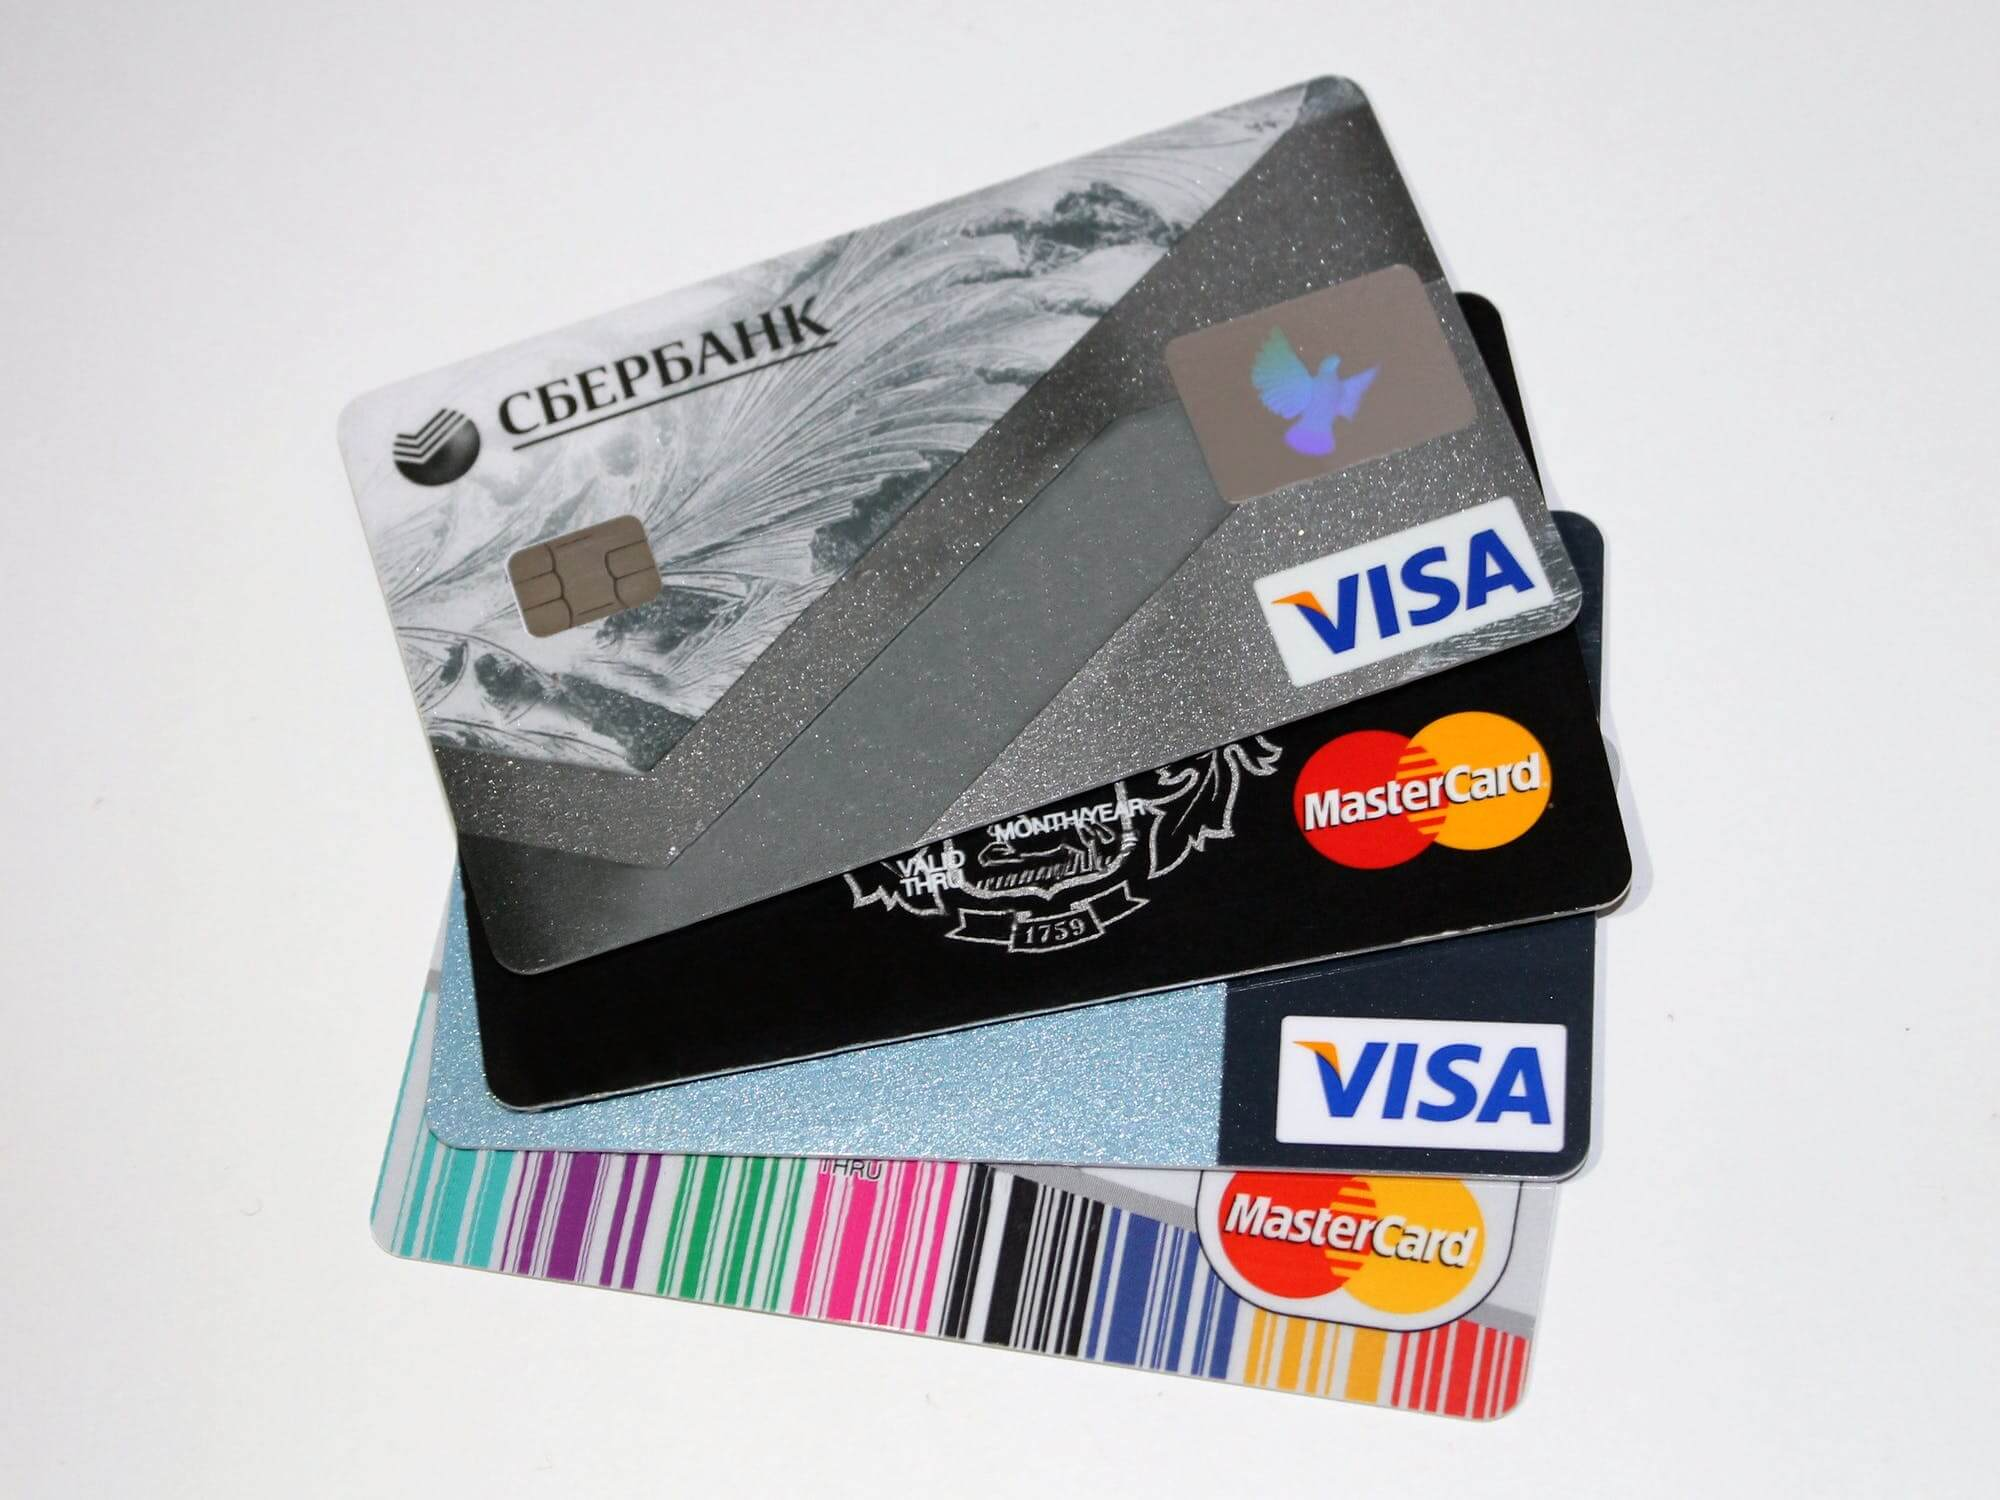 One way of improving your credit score is by getting yourself a credit card.